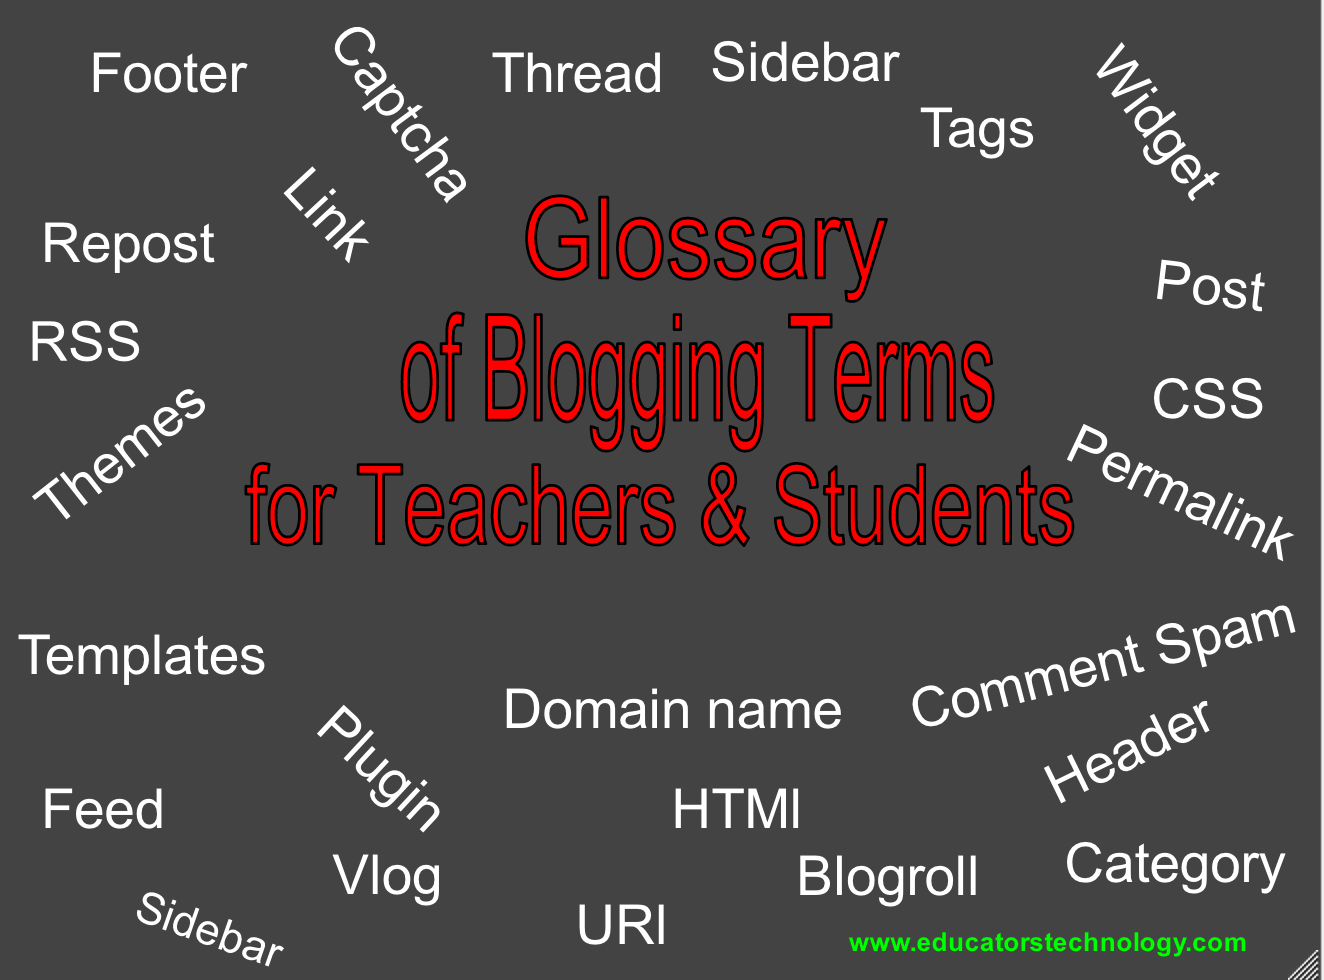 A Glossary of Blogging Terms for Teachers and Students | Educational